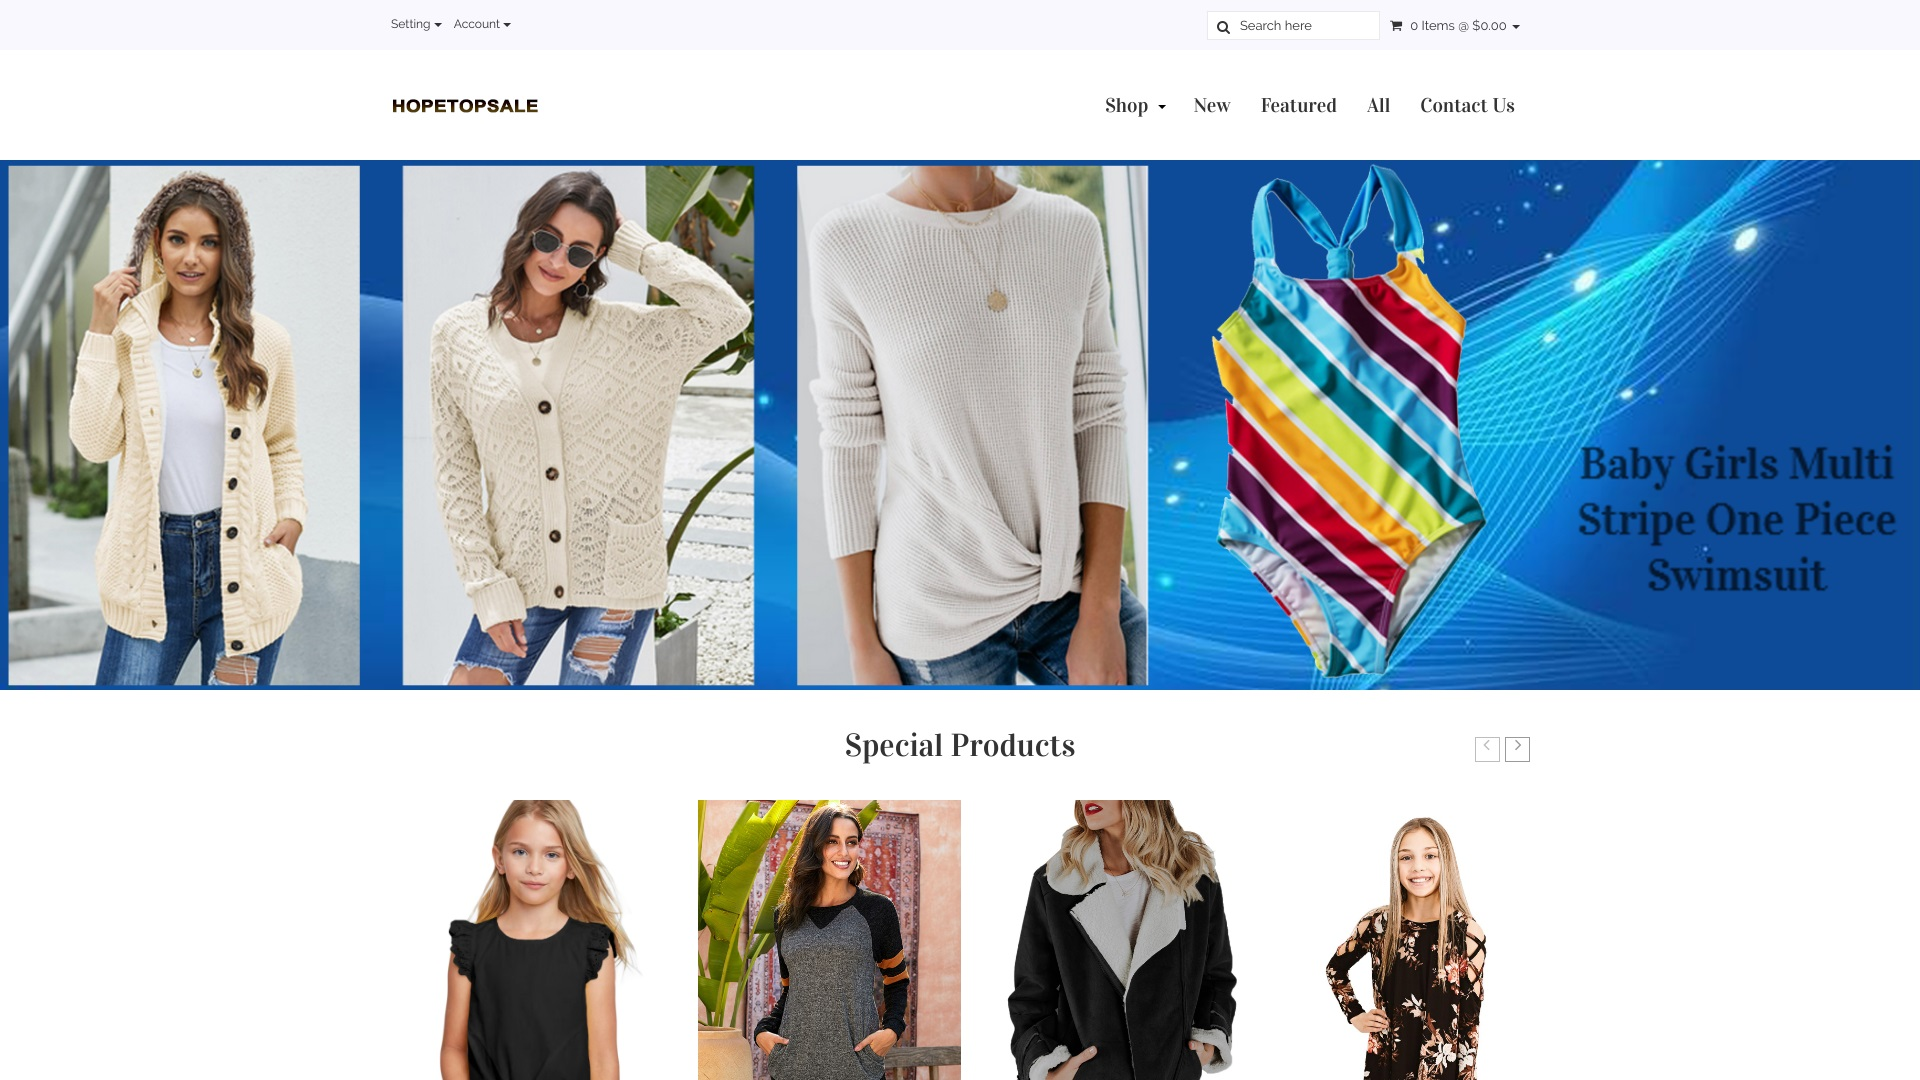 Is Hopetopsale a Scam? See the Review of the Online Store